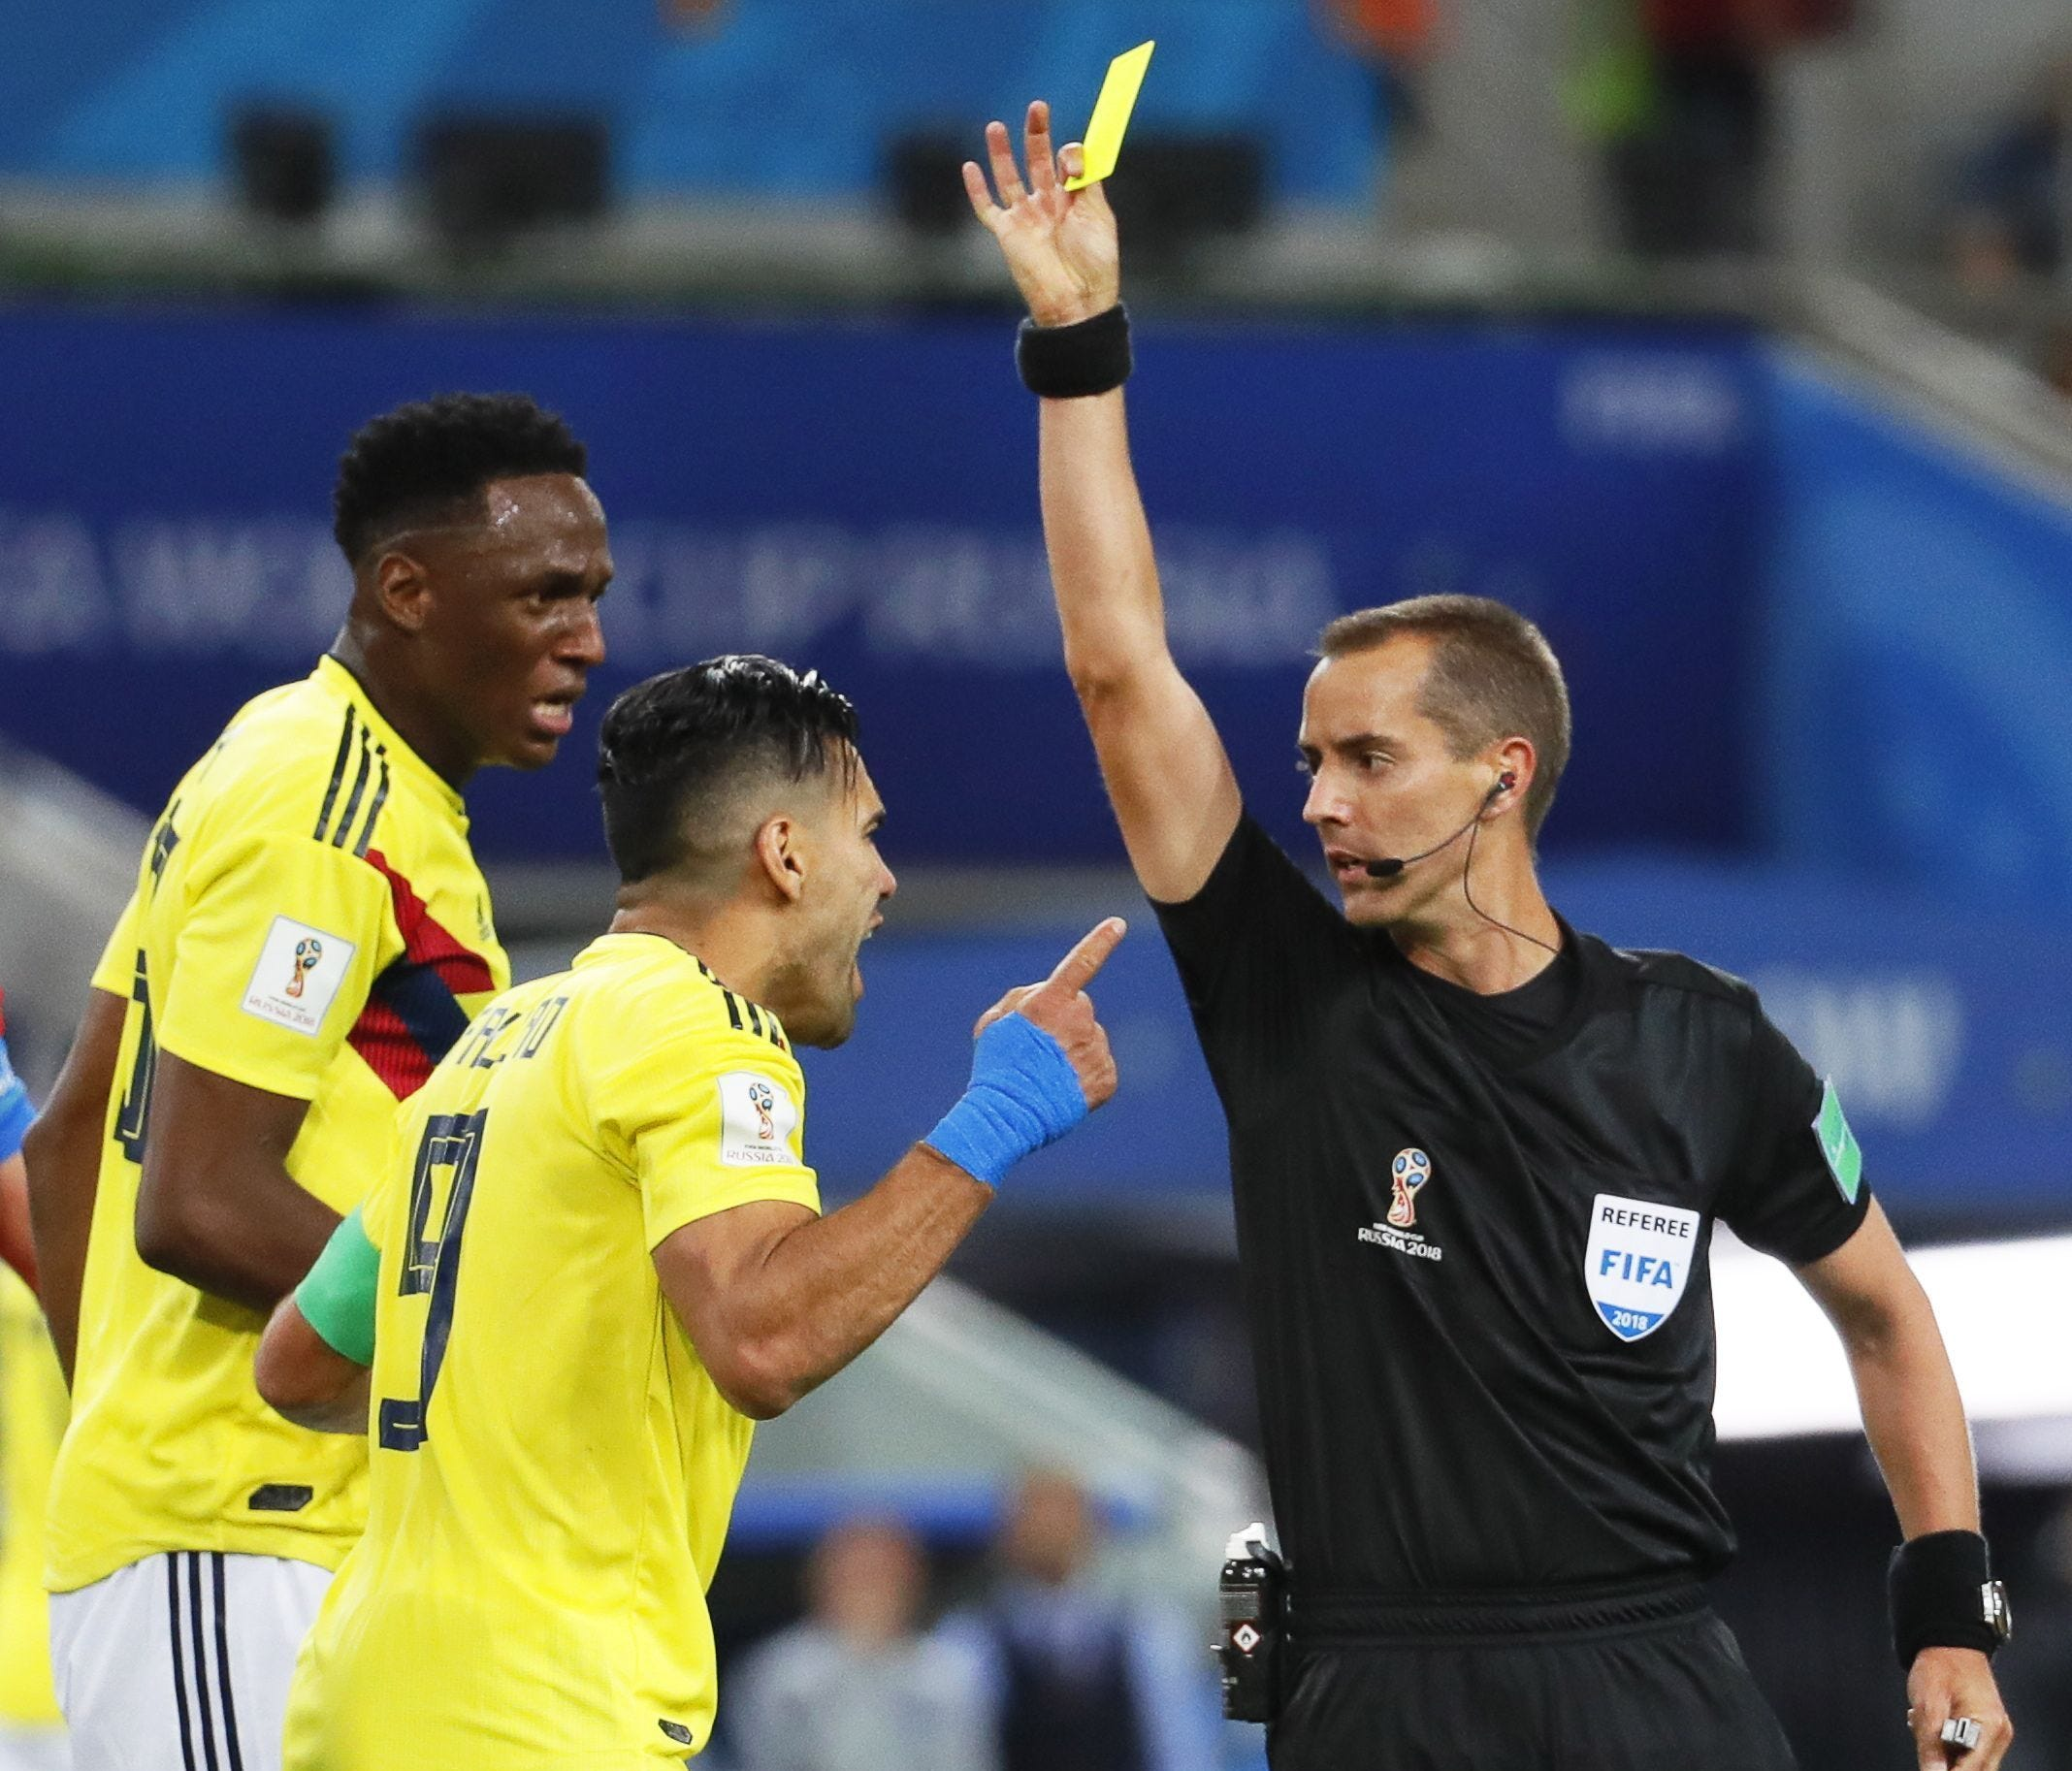 Mark Geiger gives Radamel Falcao (No. 9) of Colombia a yellow card during the World Cup match against England.